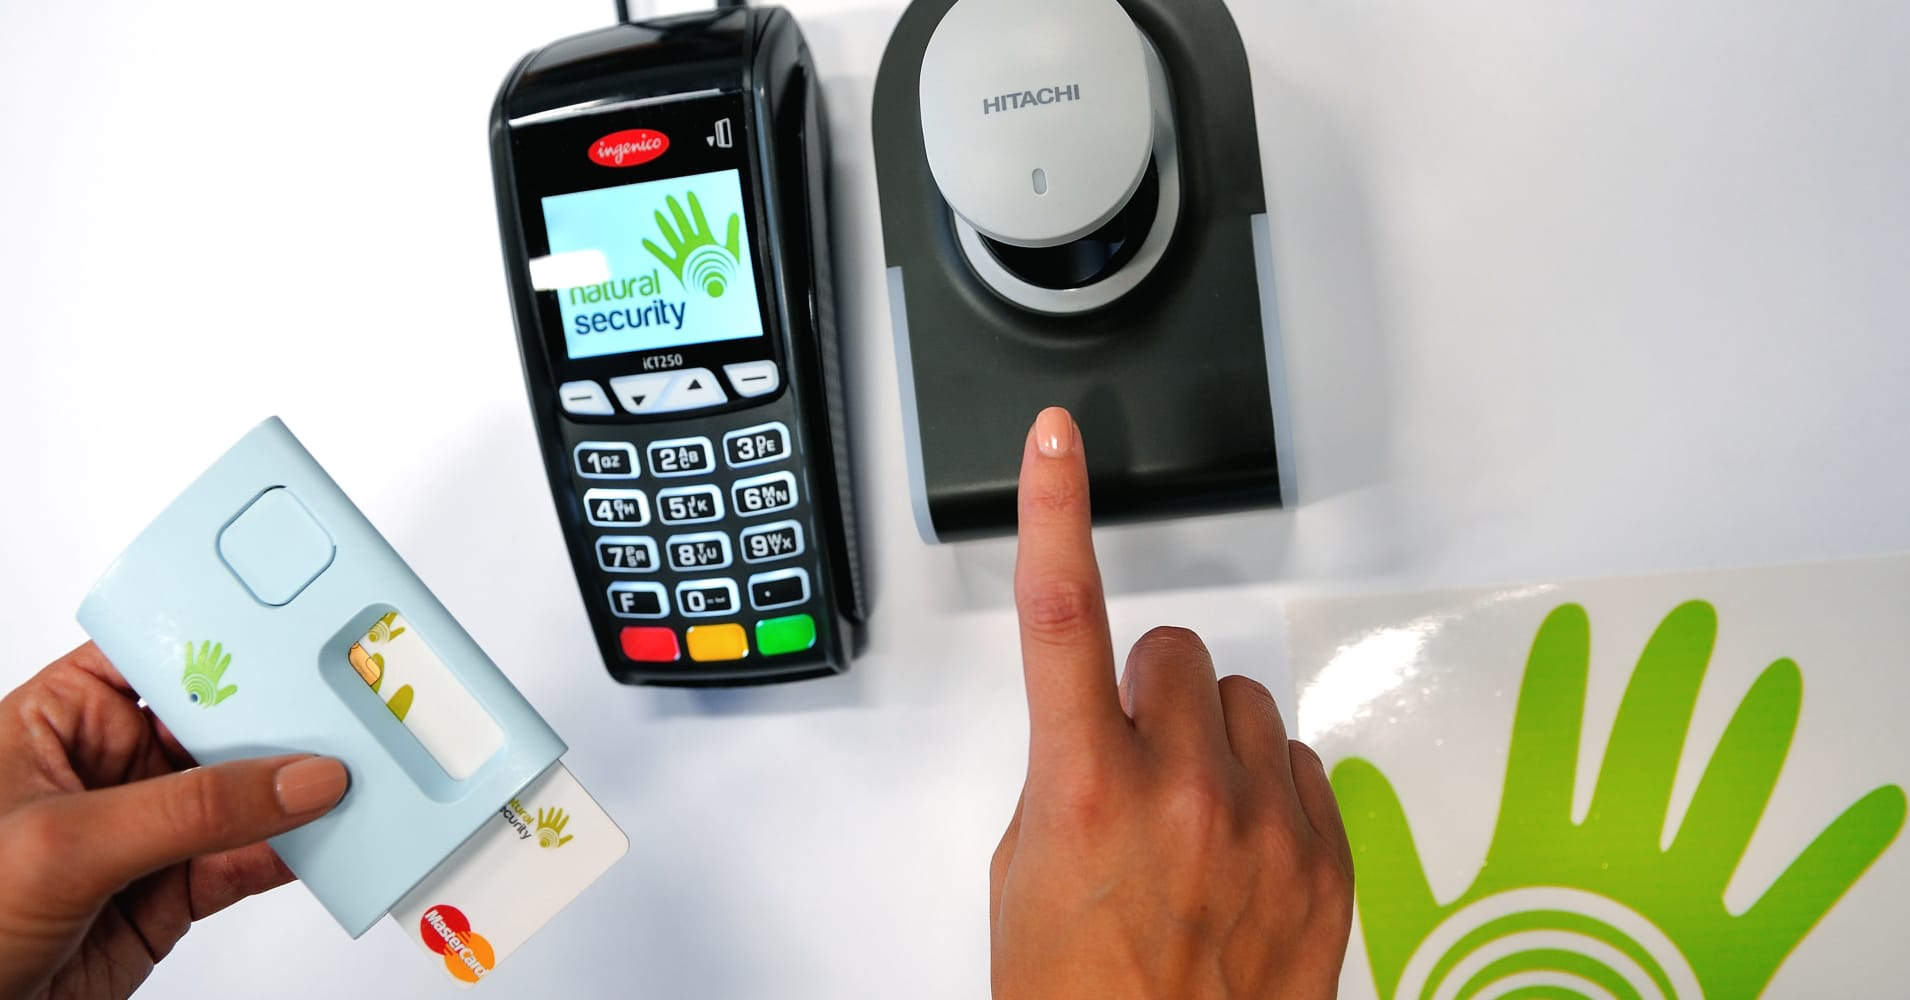 Mastercard creates credit card with fingerprint scanner